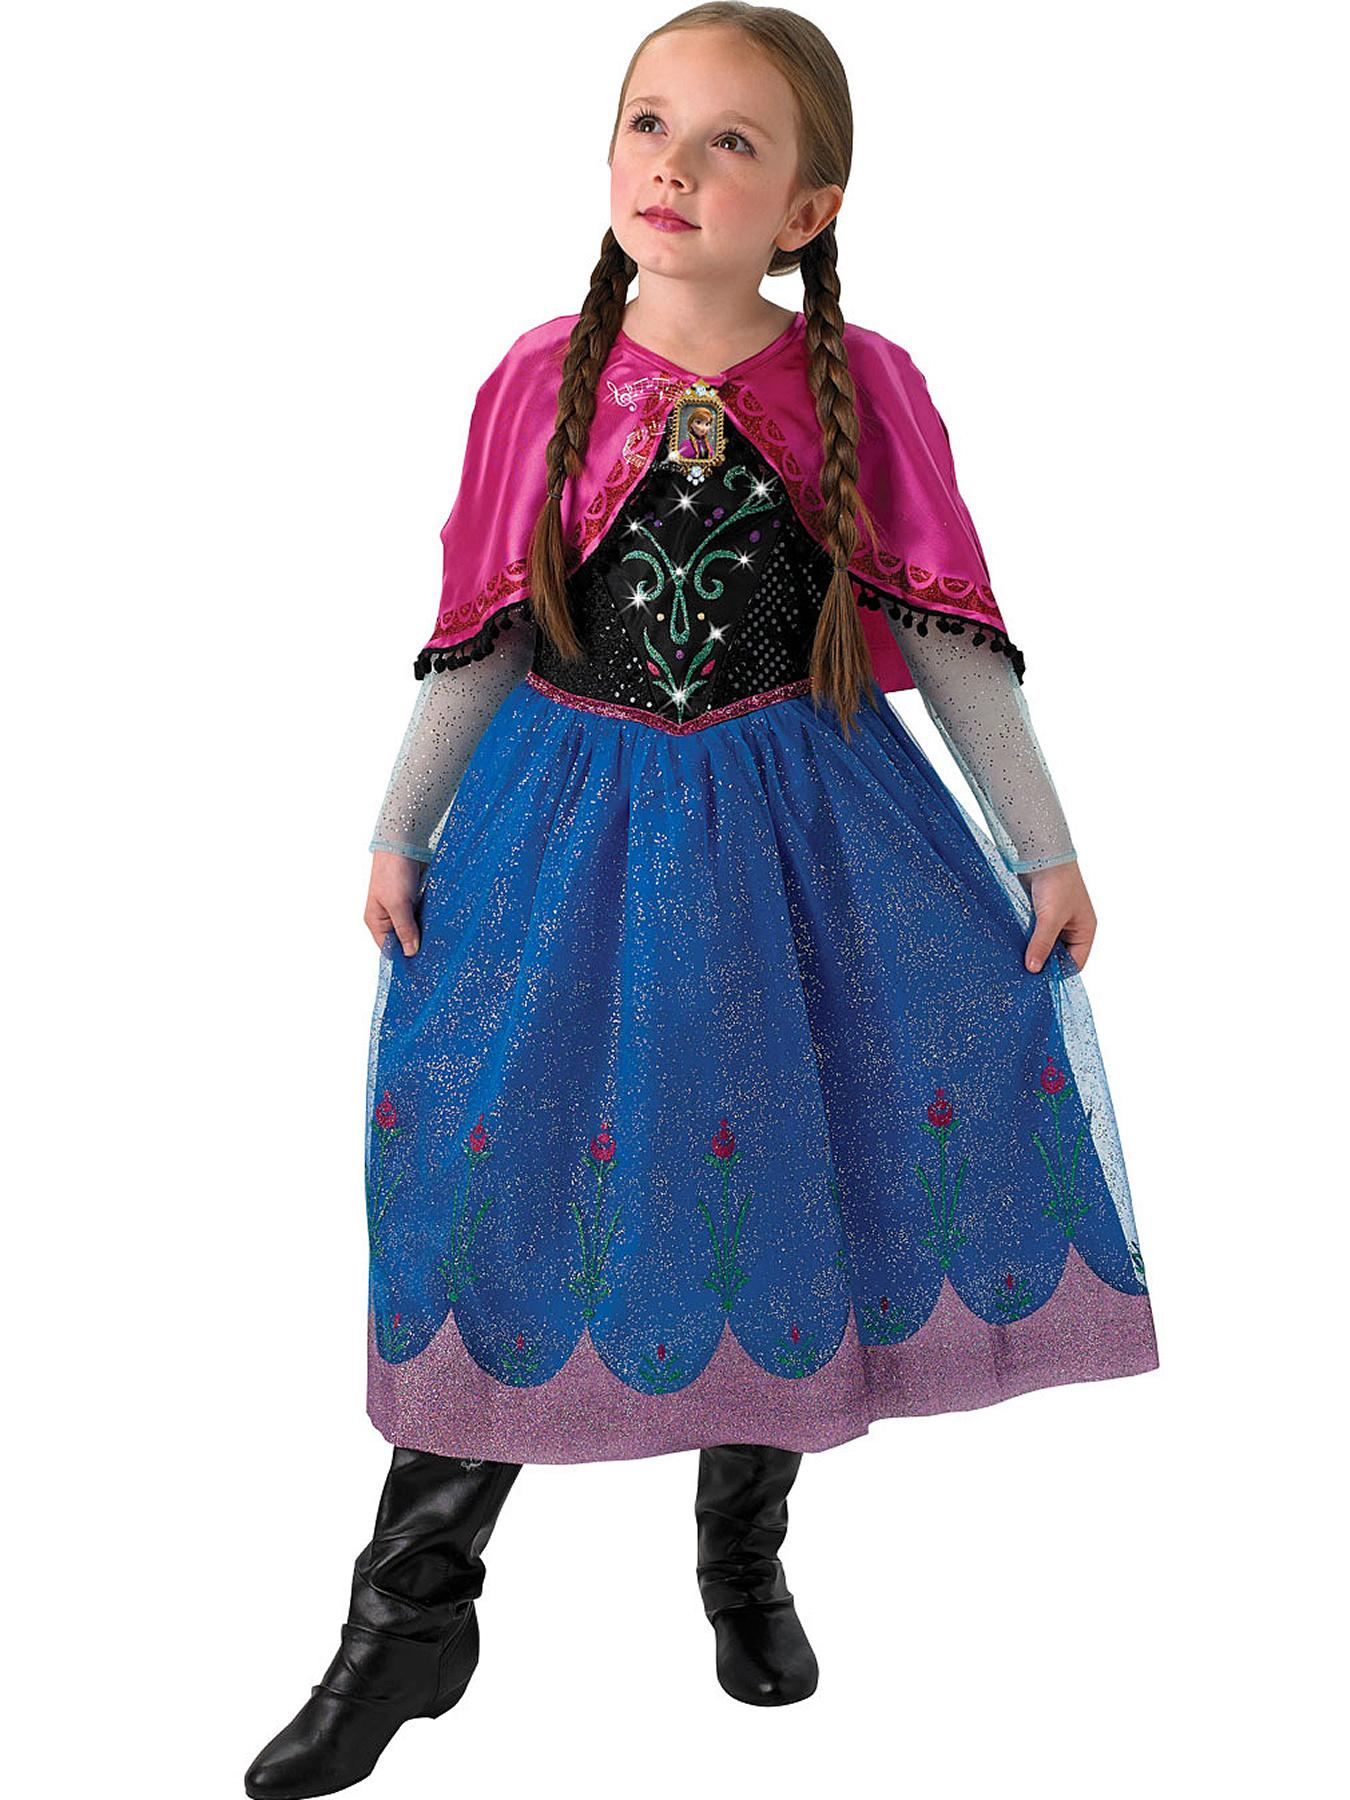 Disney Frozen Musical and Light-Up Anna Costume - Child.